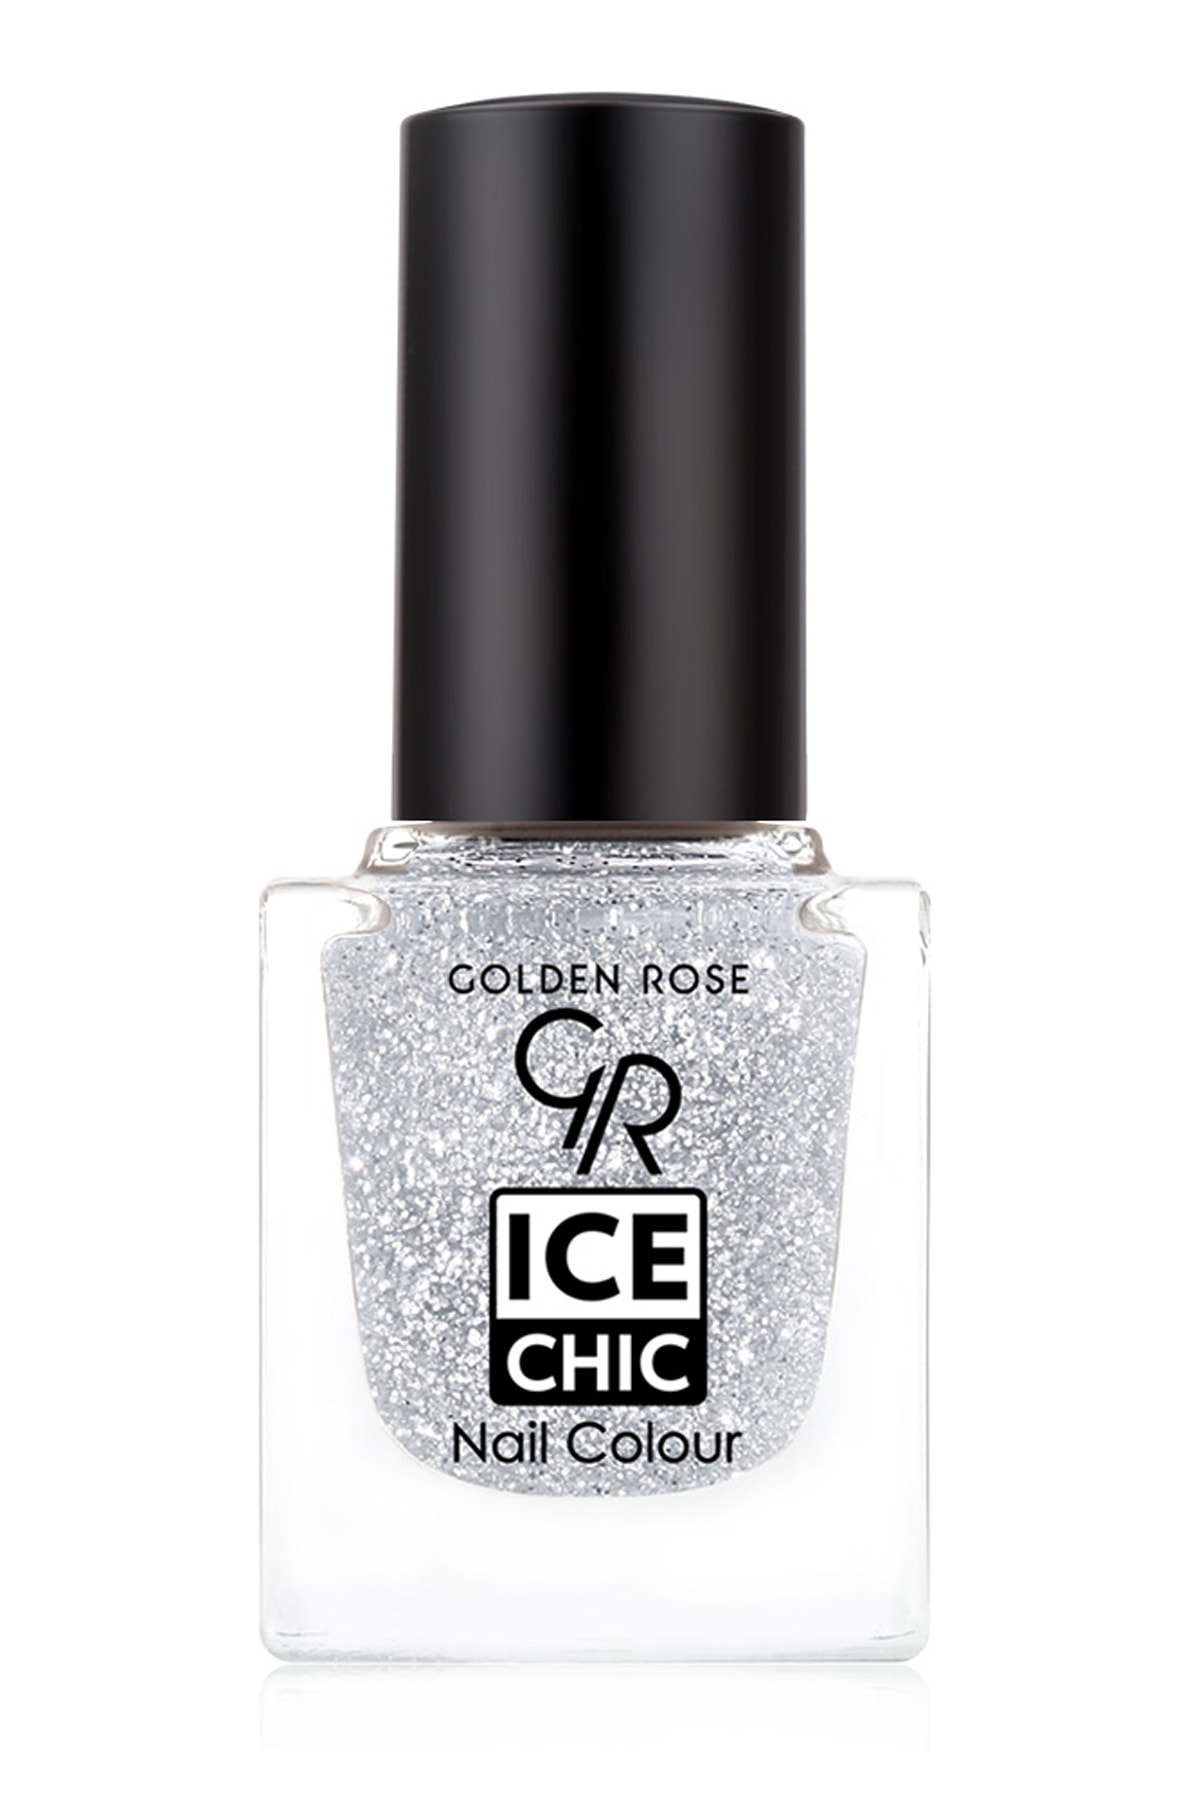 Golden Rose Oje - Ice Chic Nail Colour No: 101 8691190861018